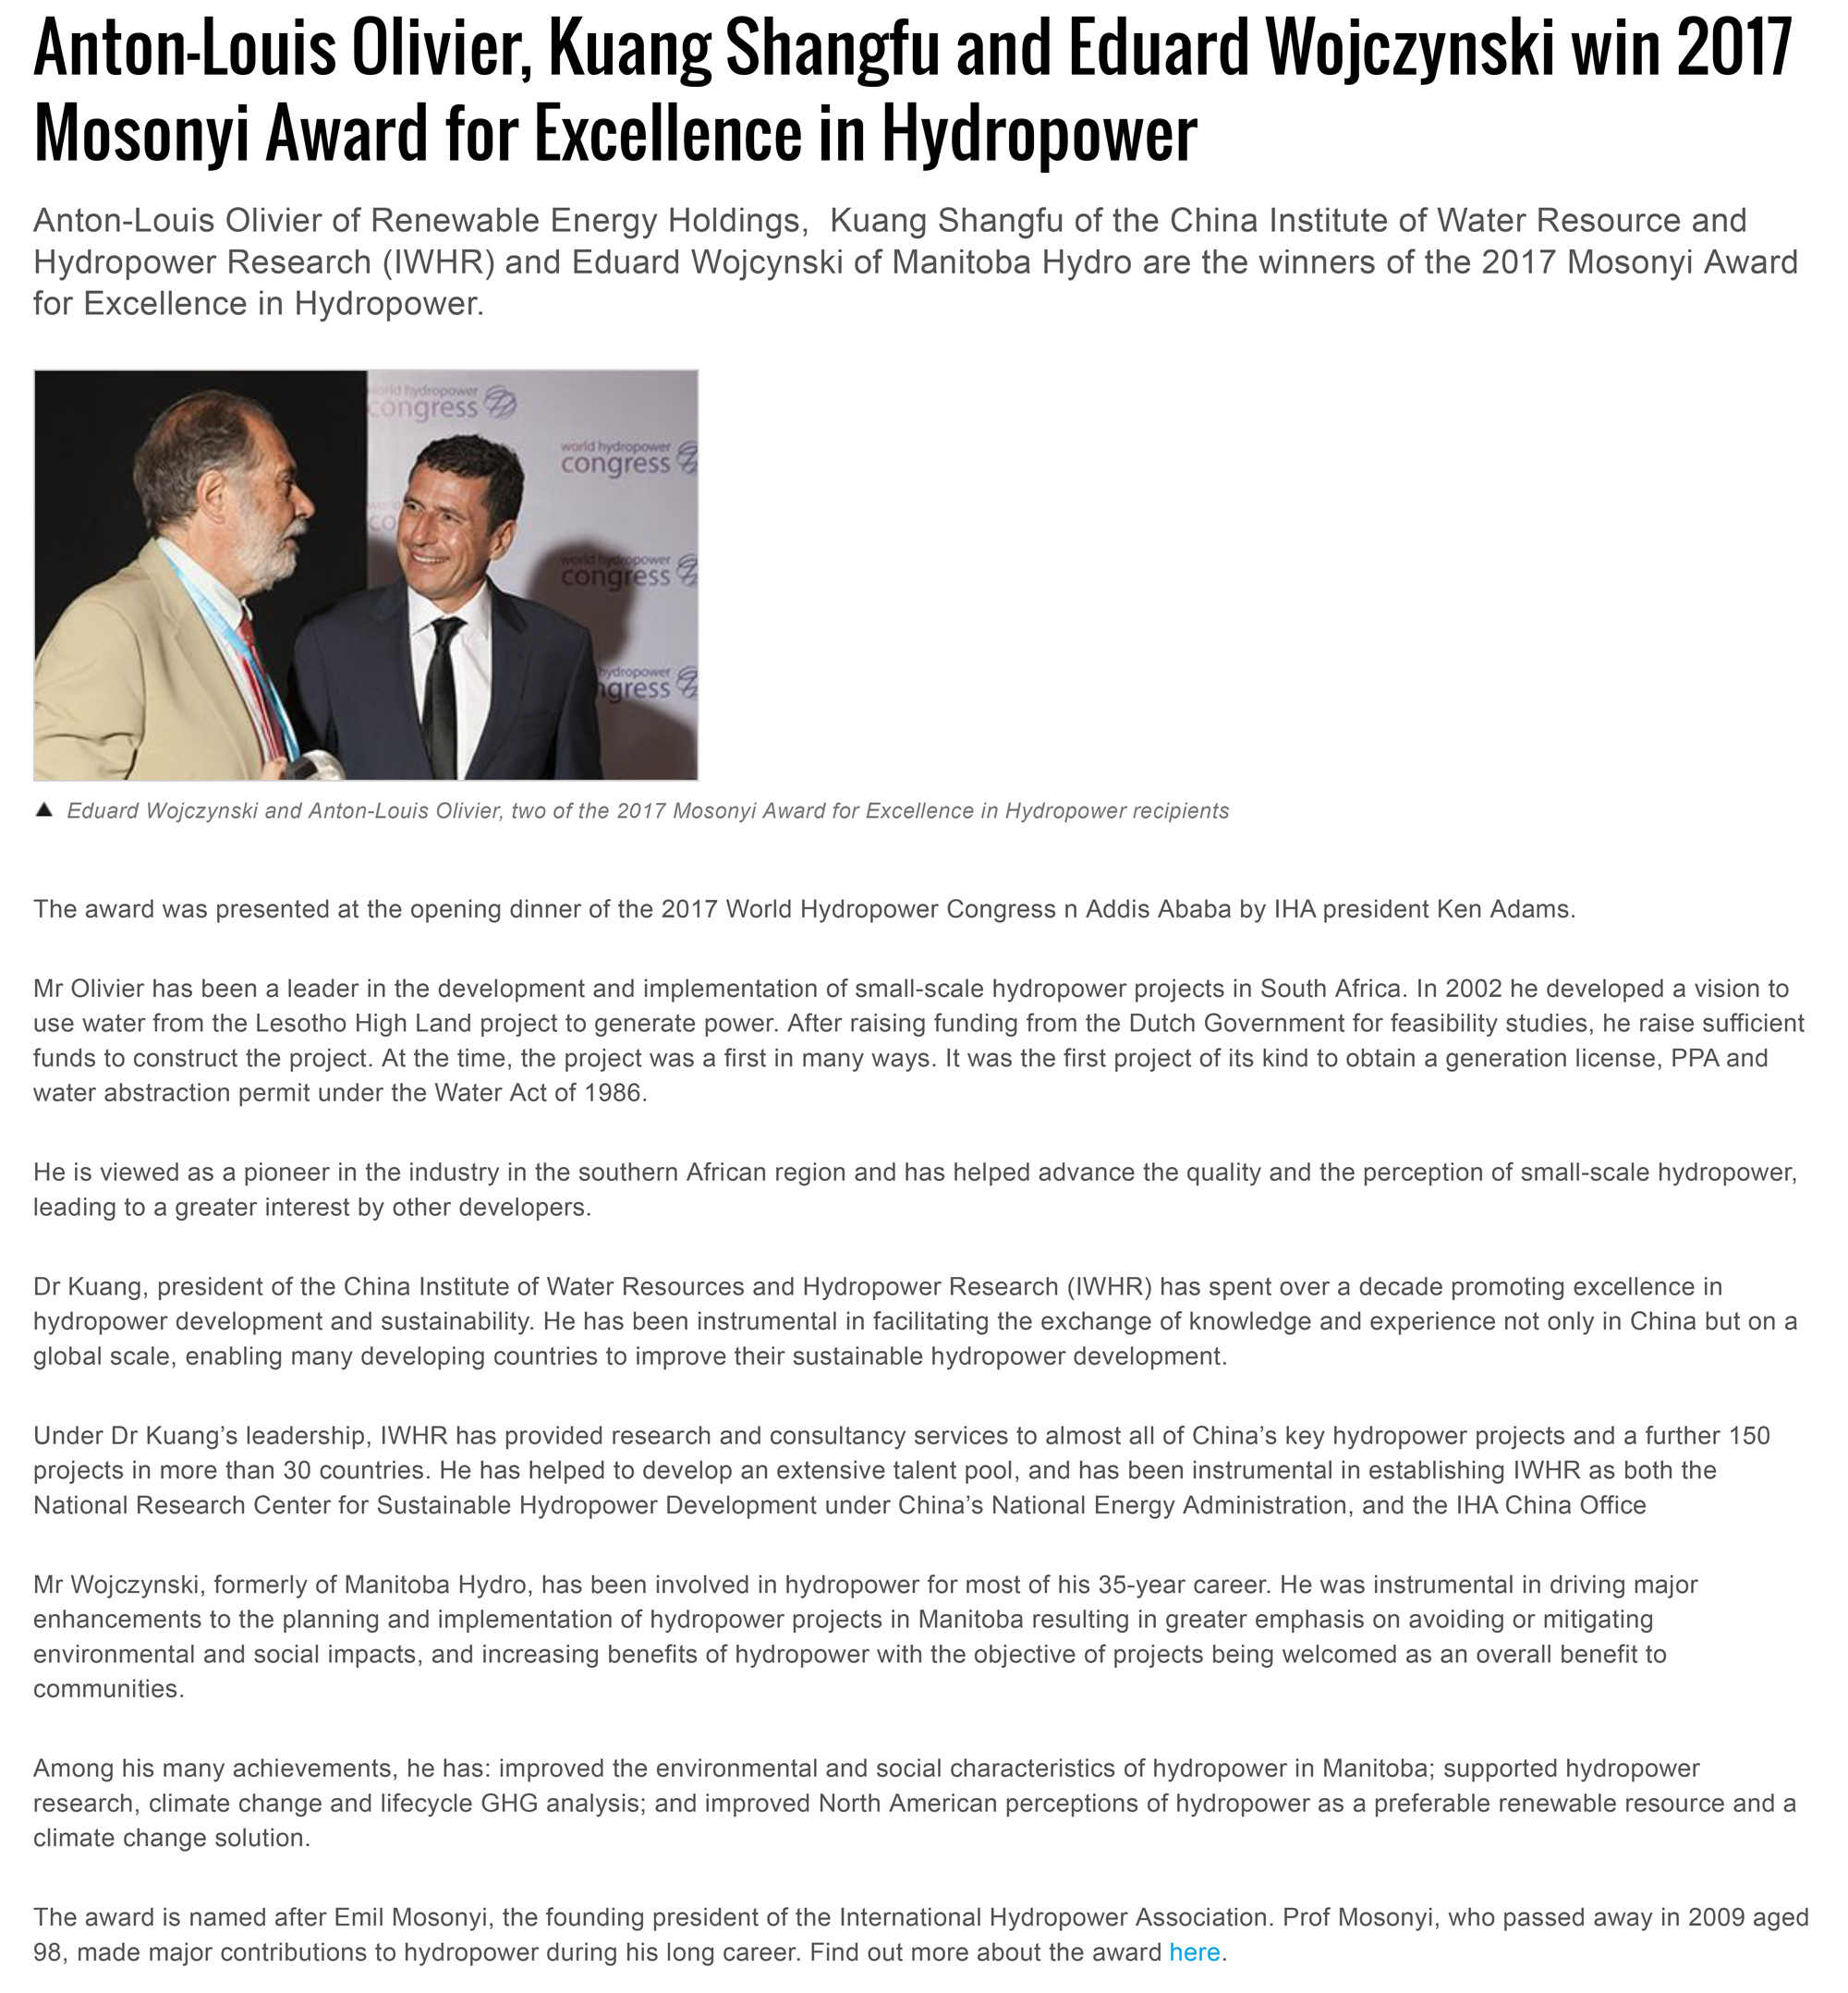 Anton-Louis Olivier, the CEO of the REH group wins the International Hydropower Association's 2017 Mosonyi award for Excellence in Hydropower